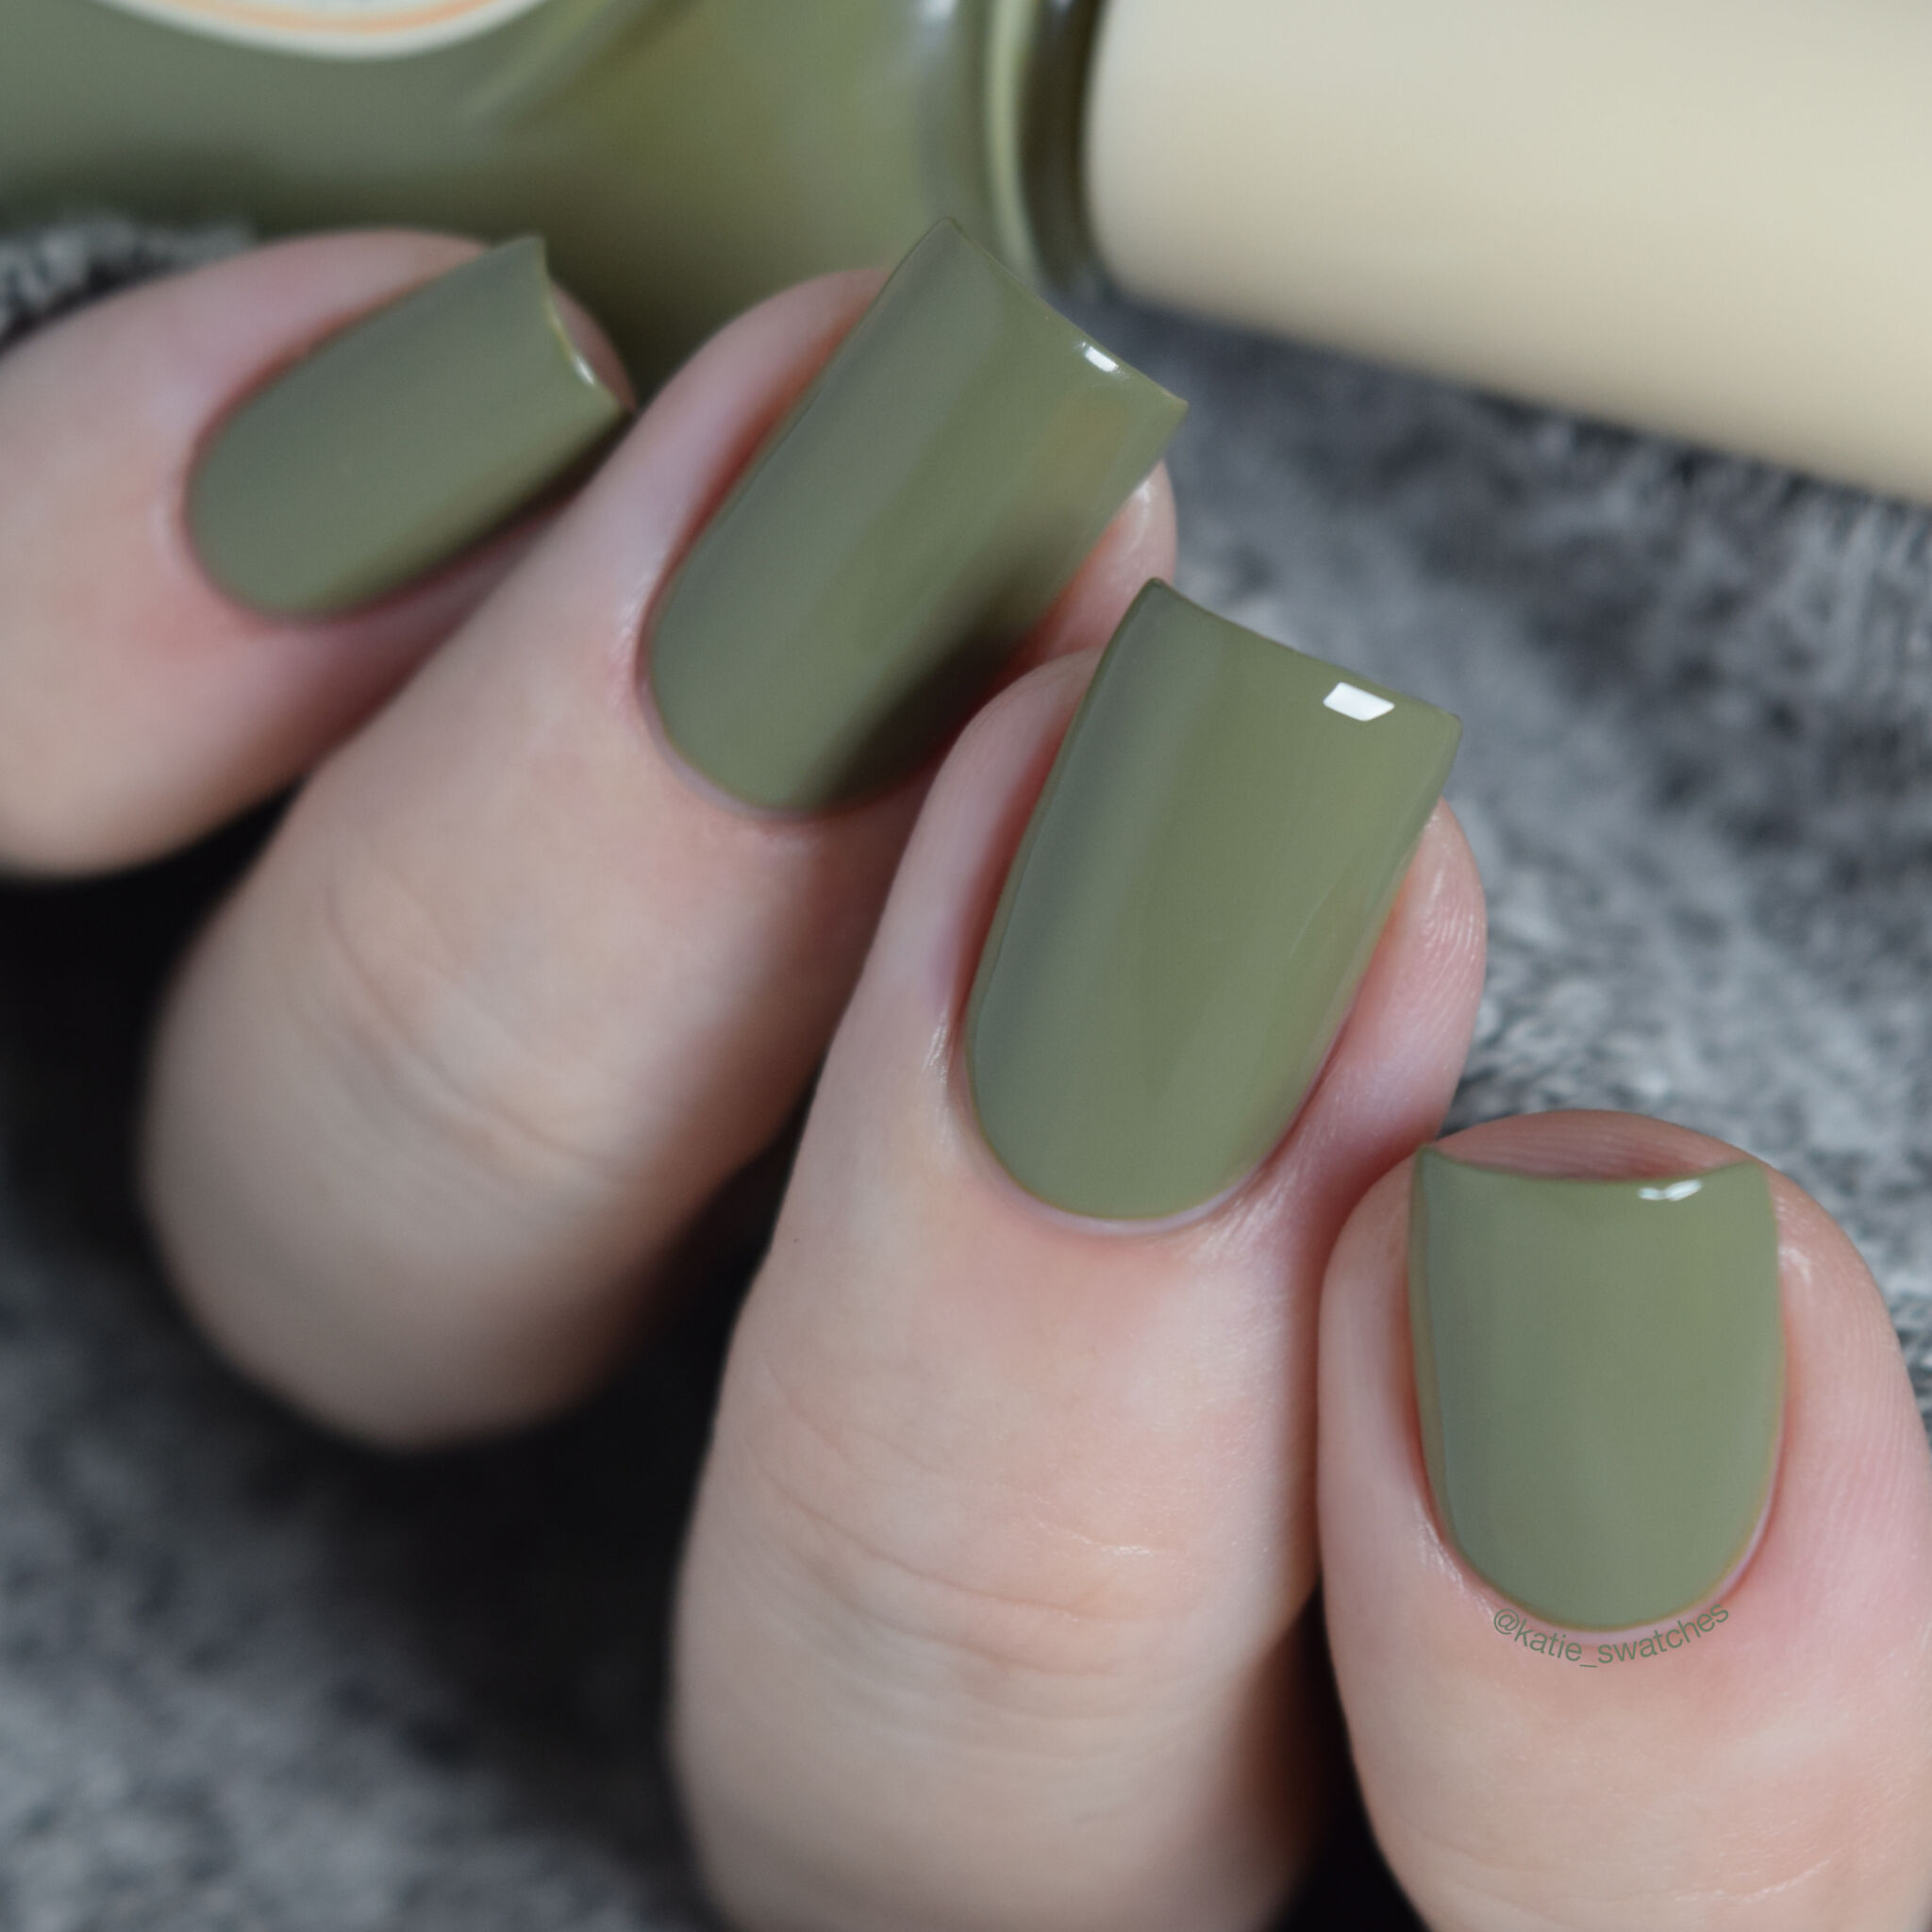 Skinfood Nail Vita Alpha AGR02 khaki green nail polish swatch